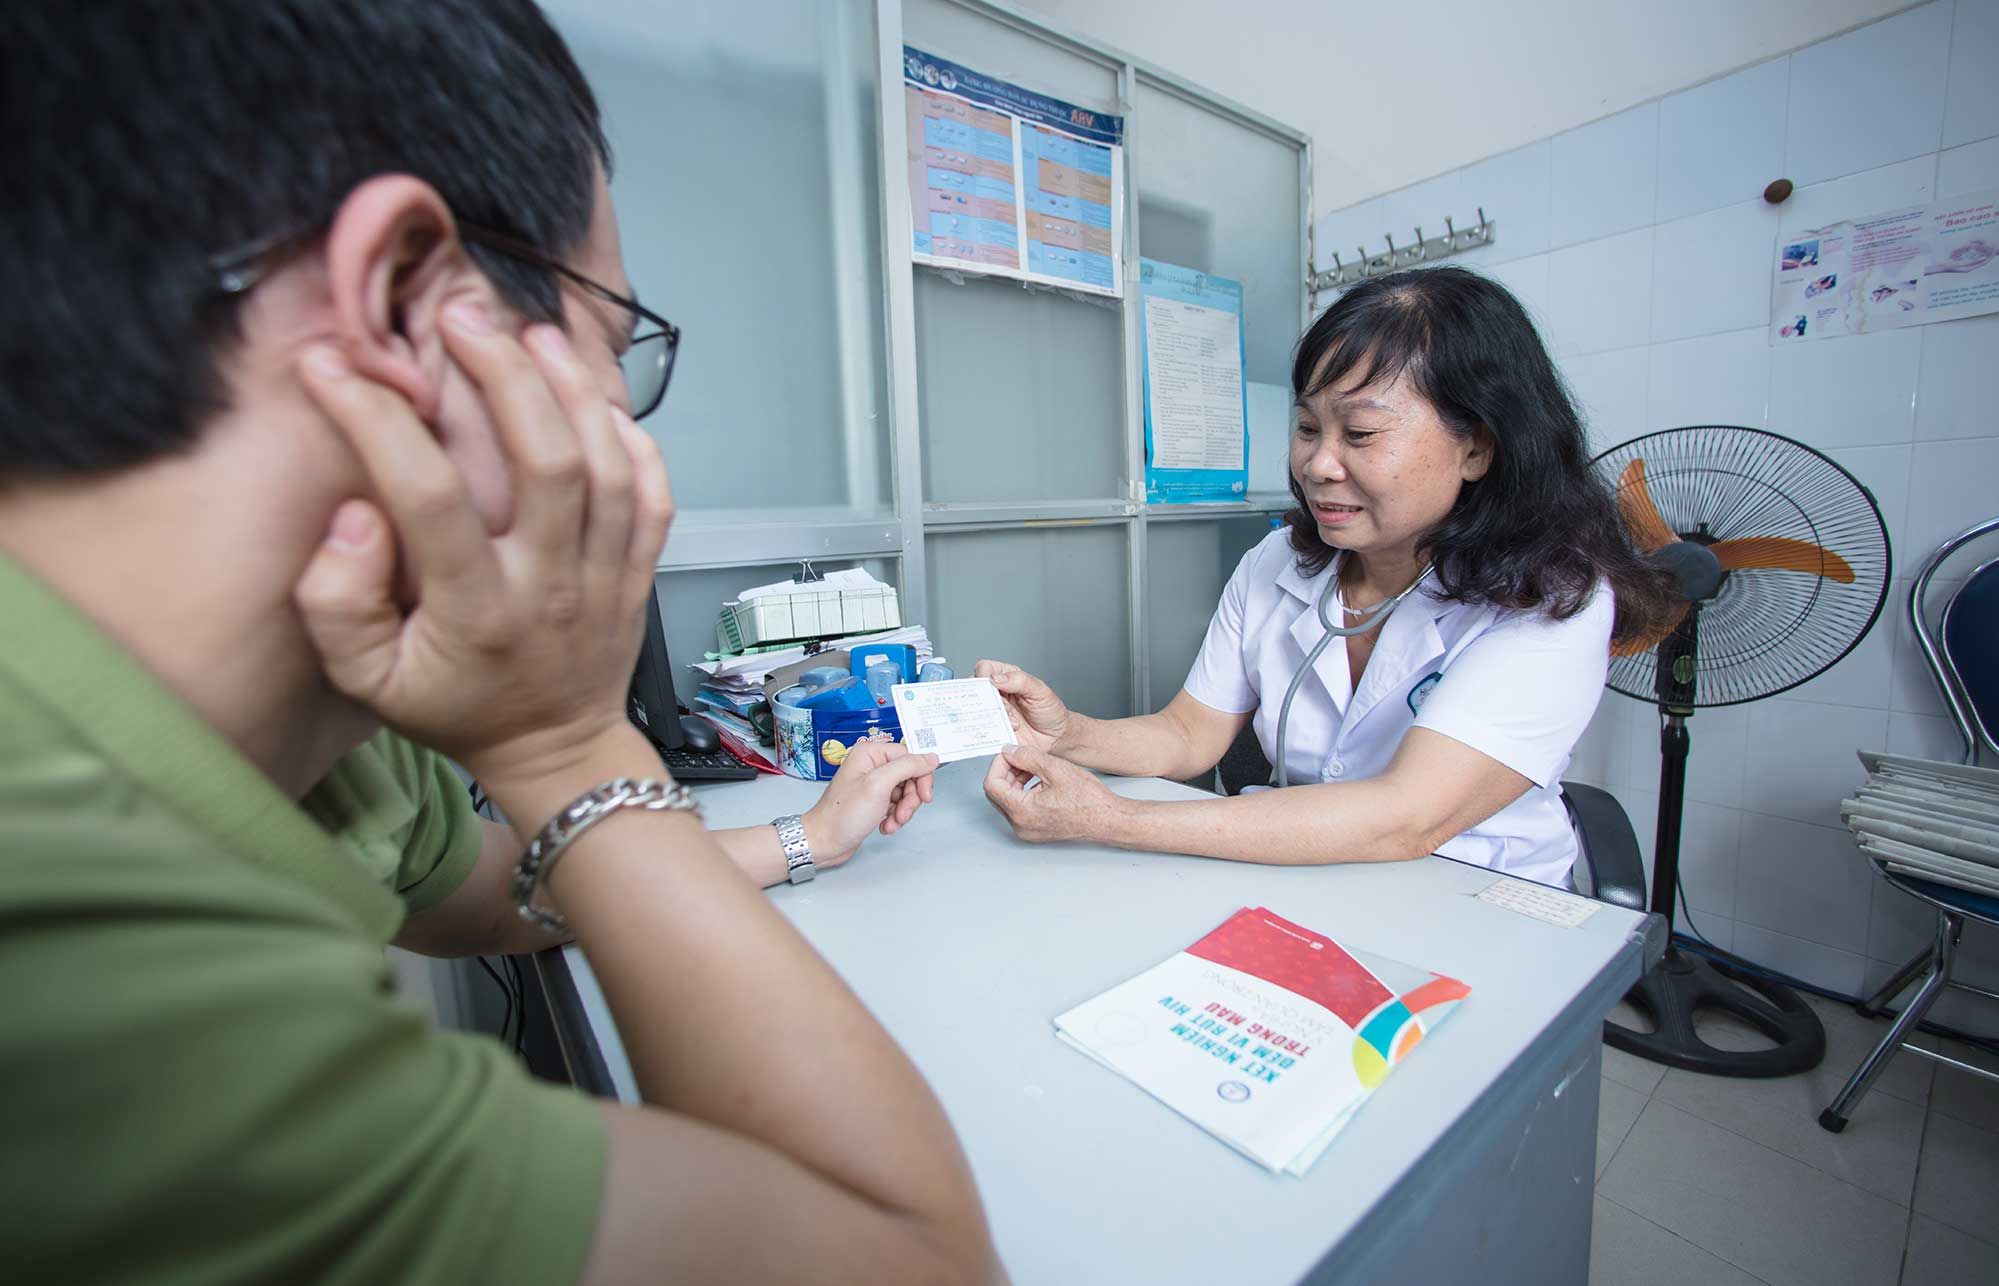 Health care worker in Vietnam speaking to patient